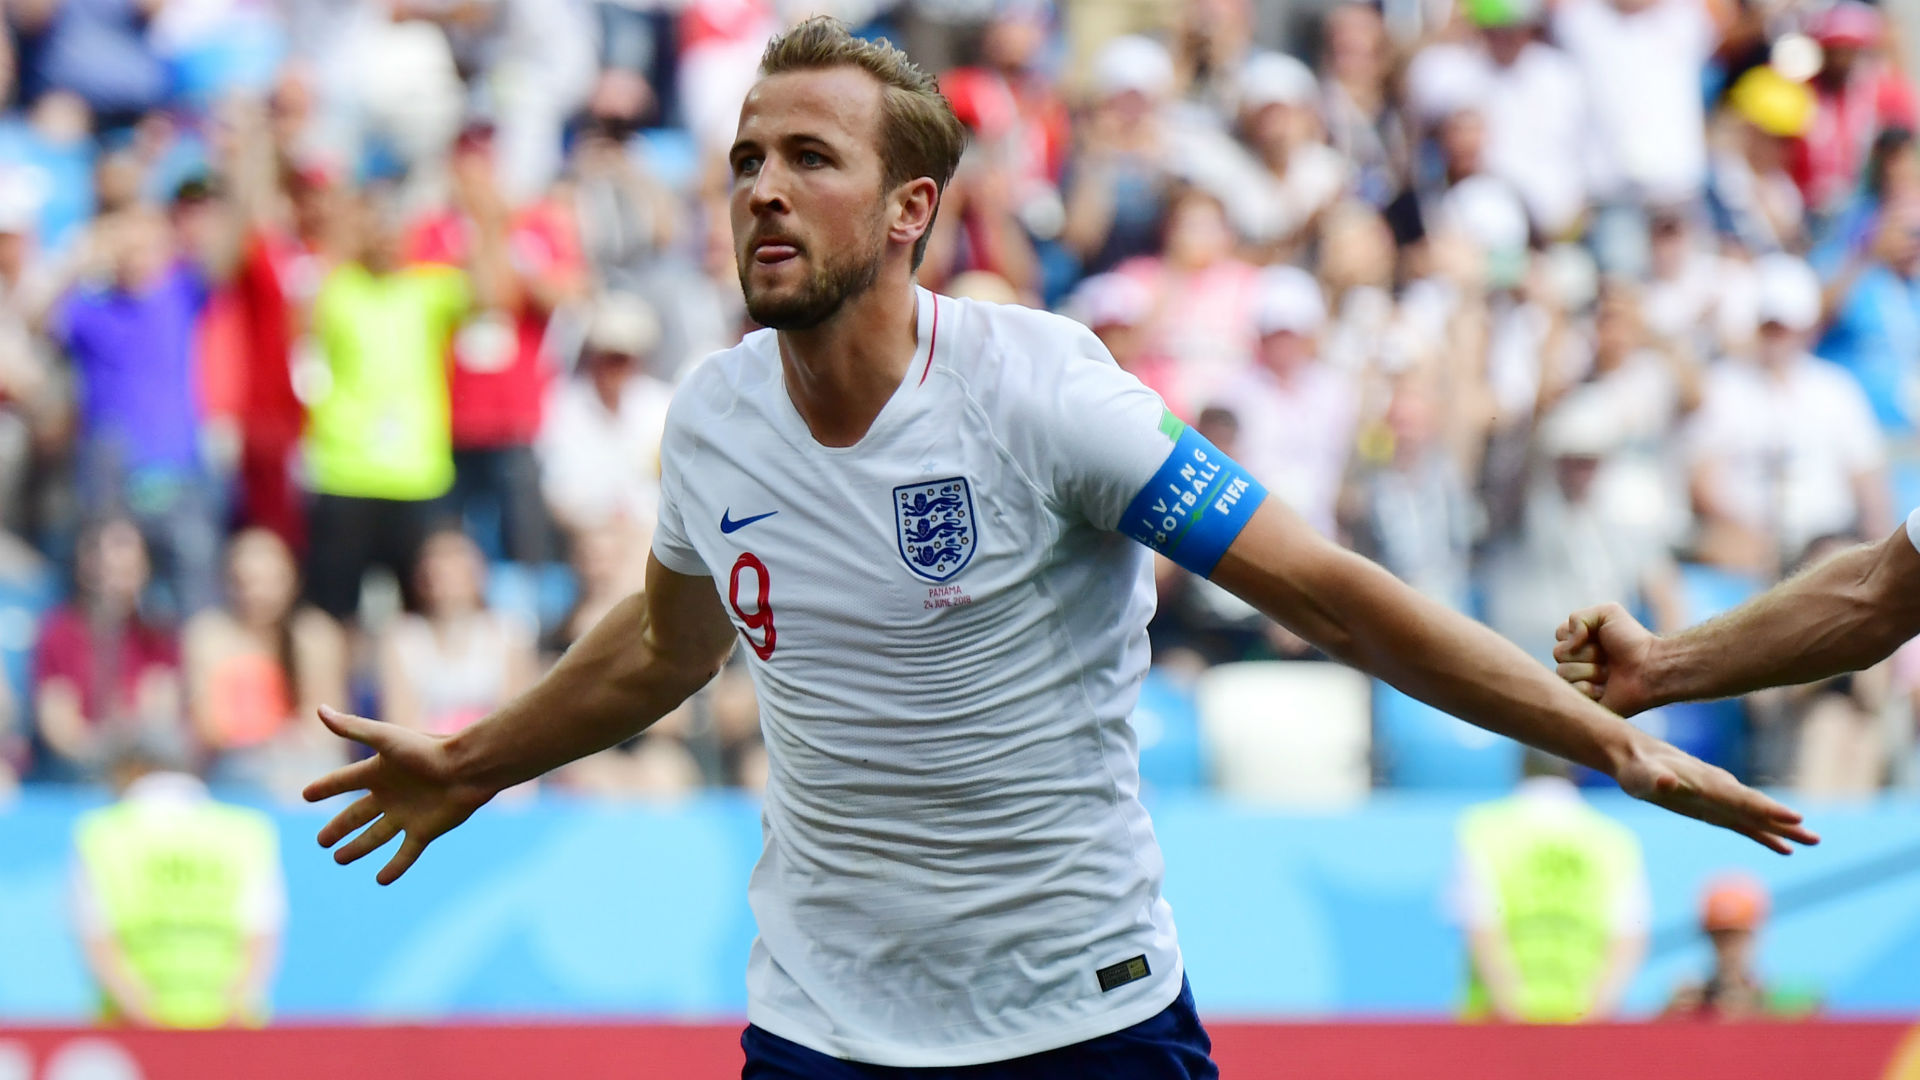 NBCSN to broadcast England-Belgium in World Cup